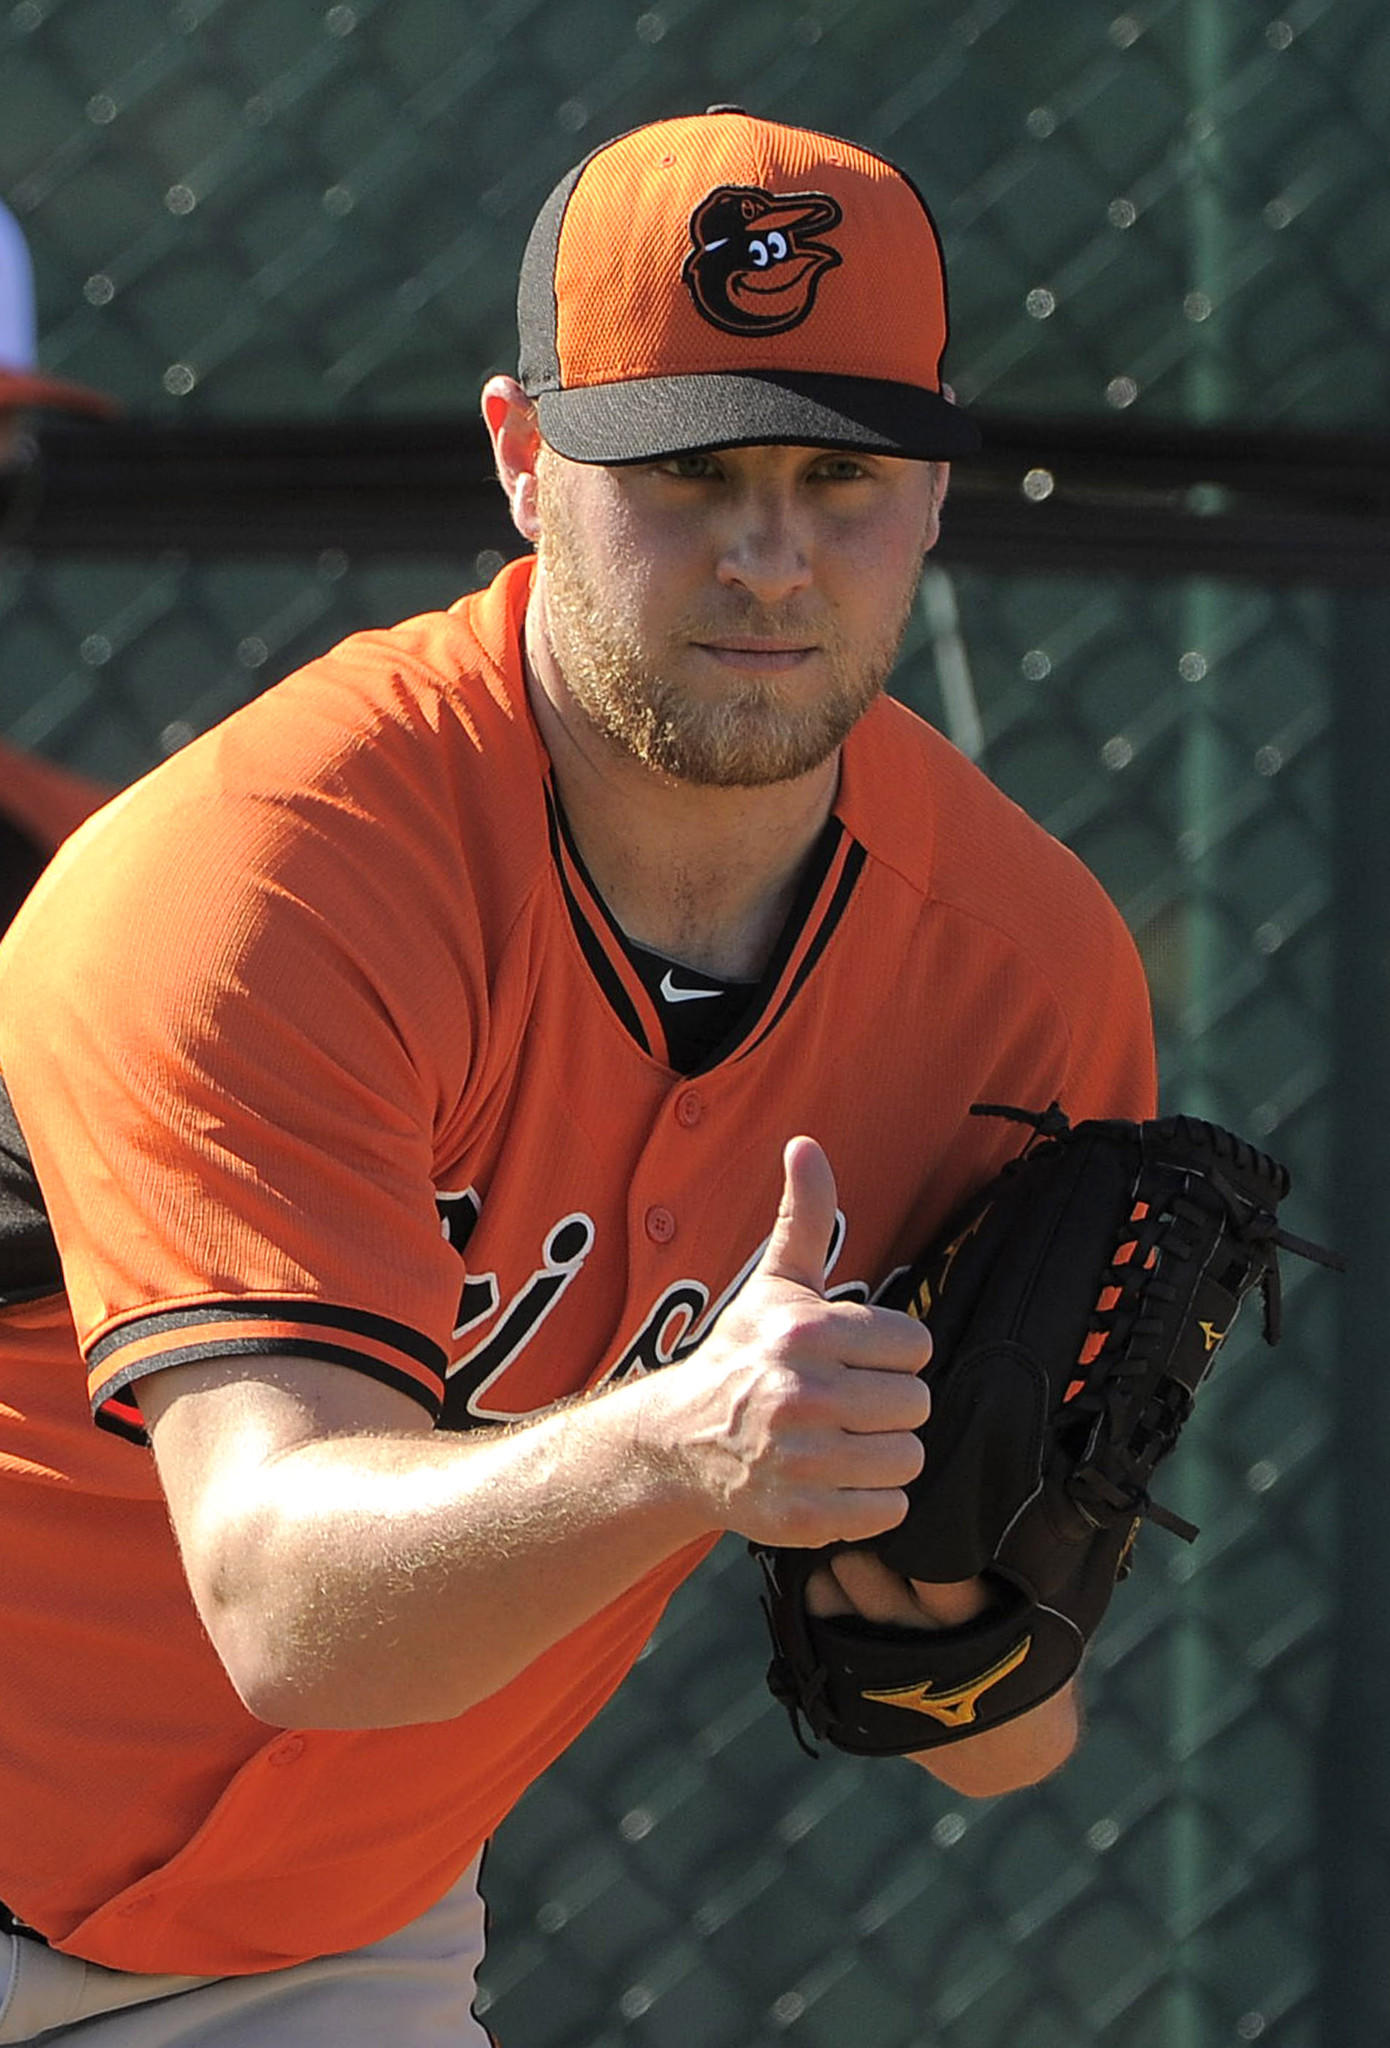 Baltimore Orioles pitcher Evan Meek gestures between throws during workouts at the Orioles' spring training facility.